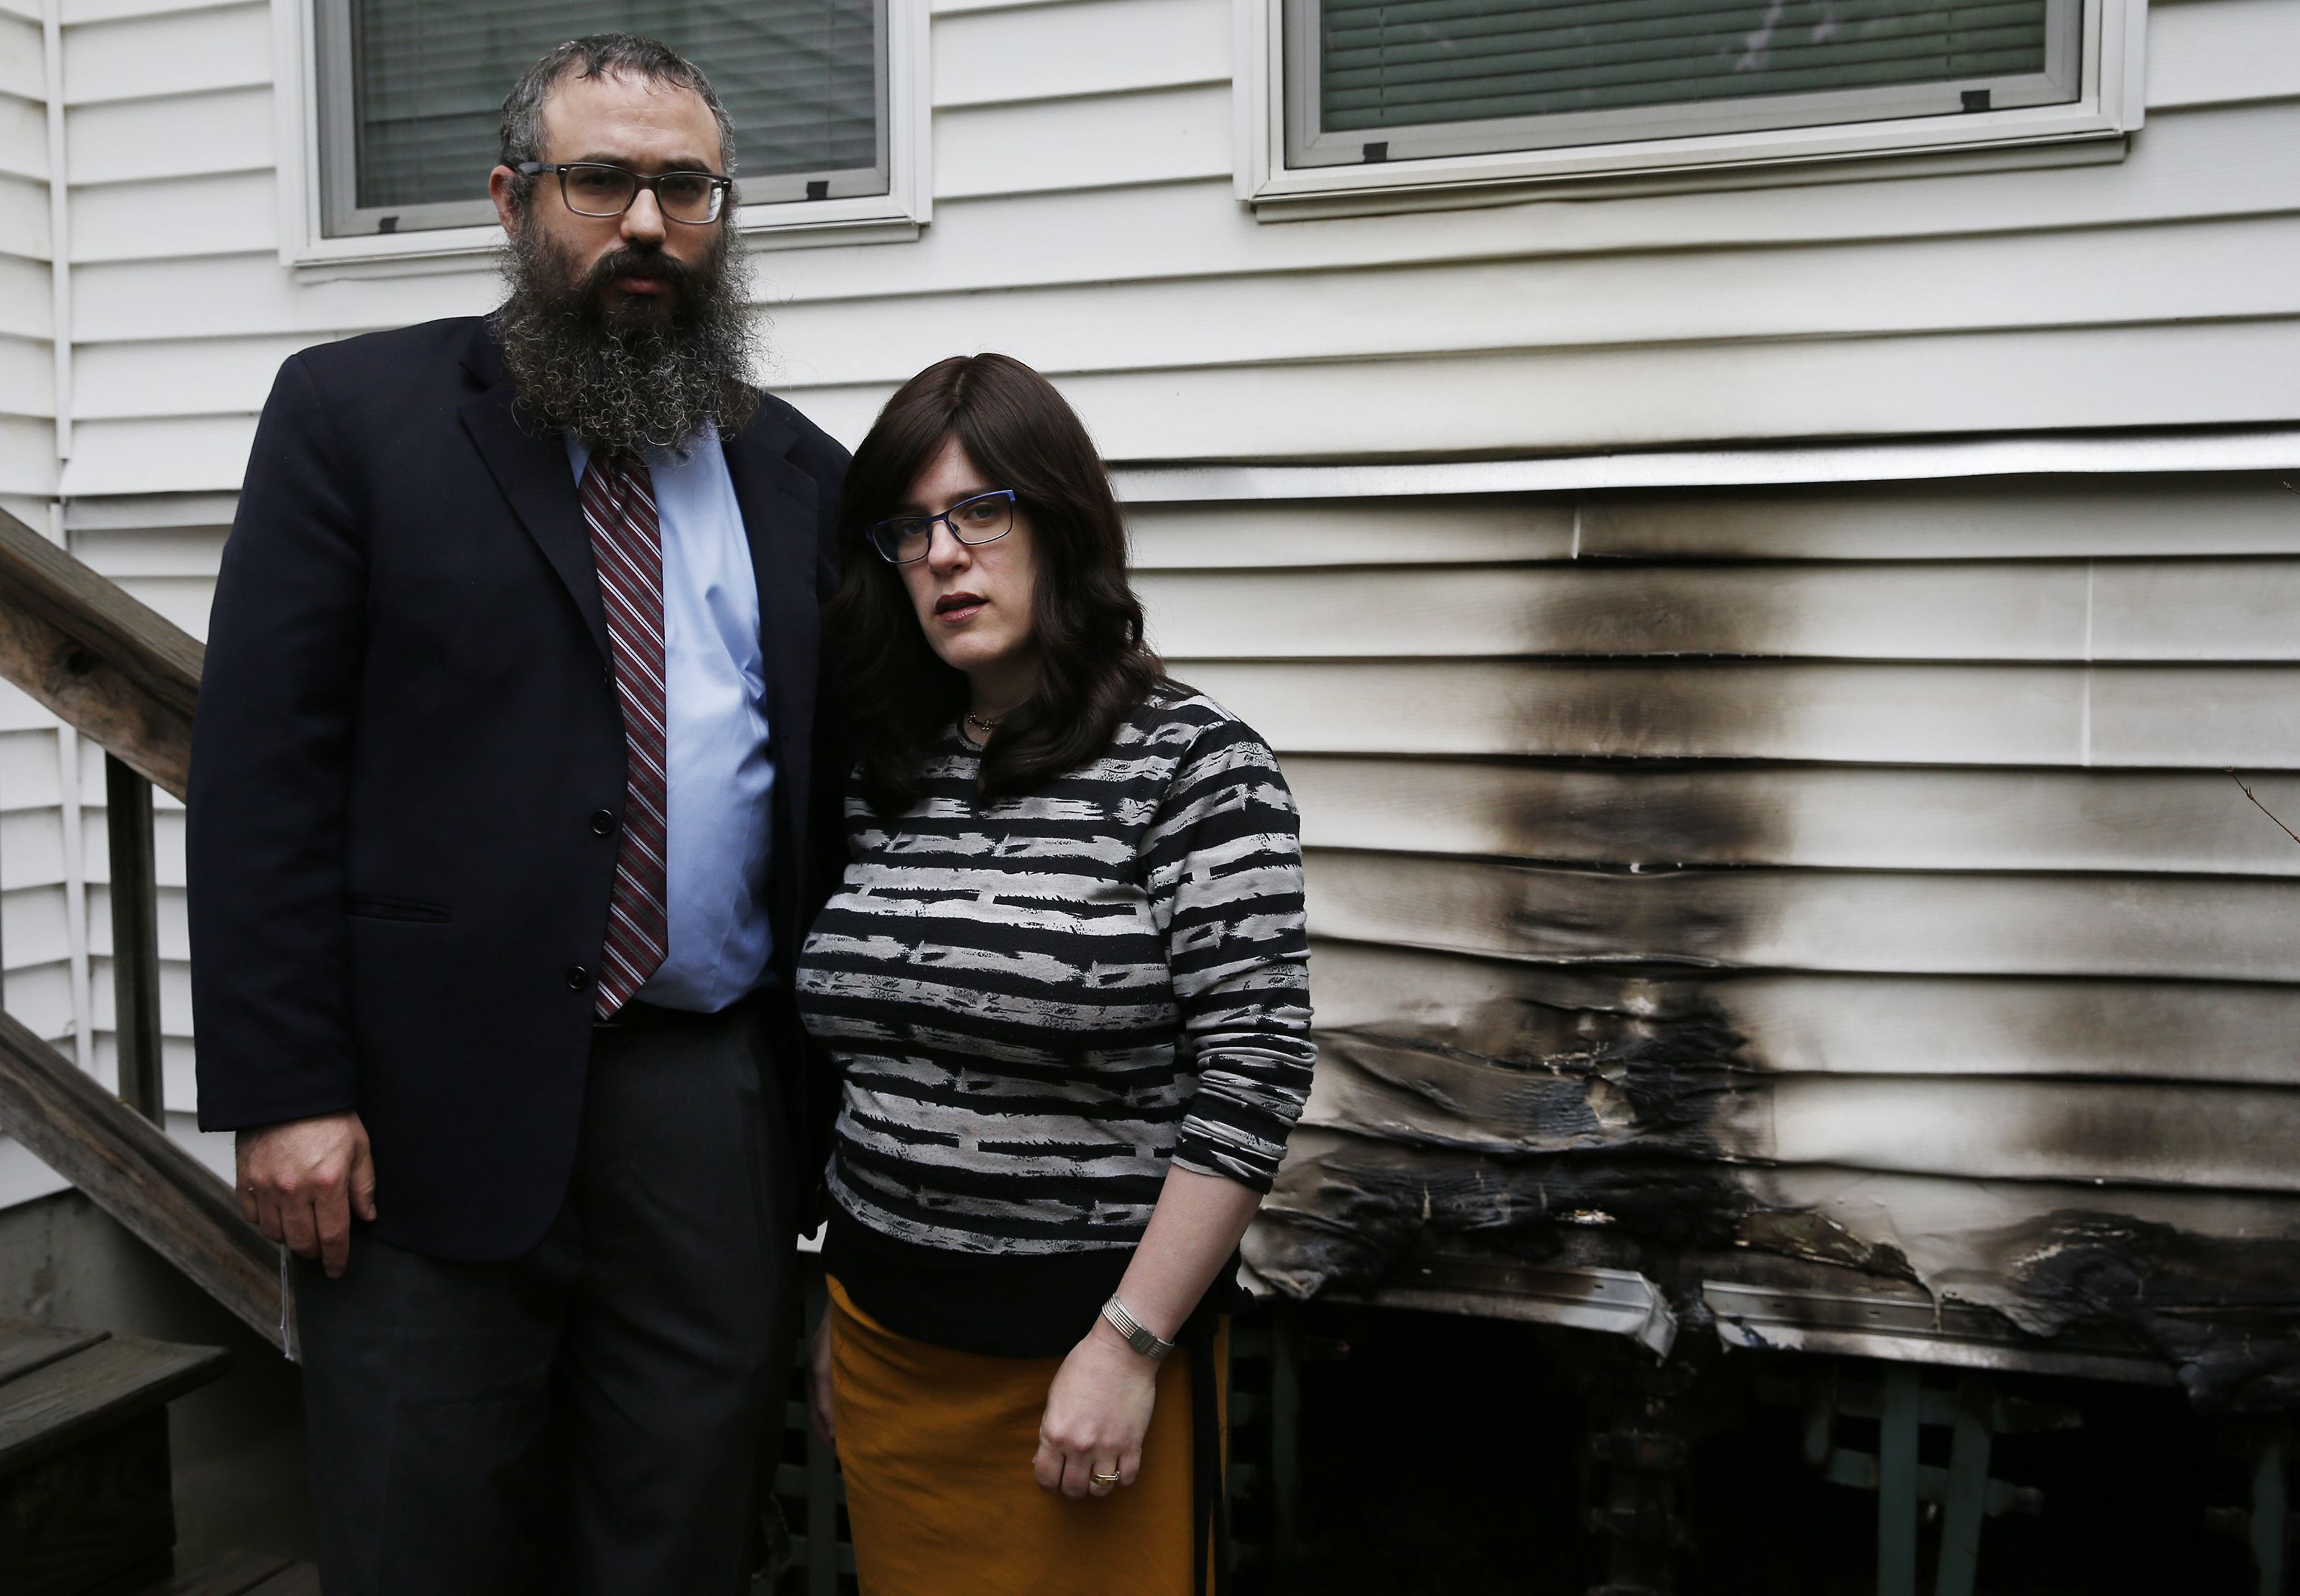 I can't be naive anymore': Targeted by arson fires, Mass